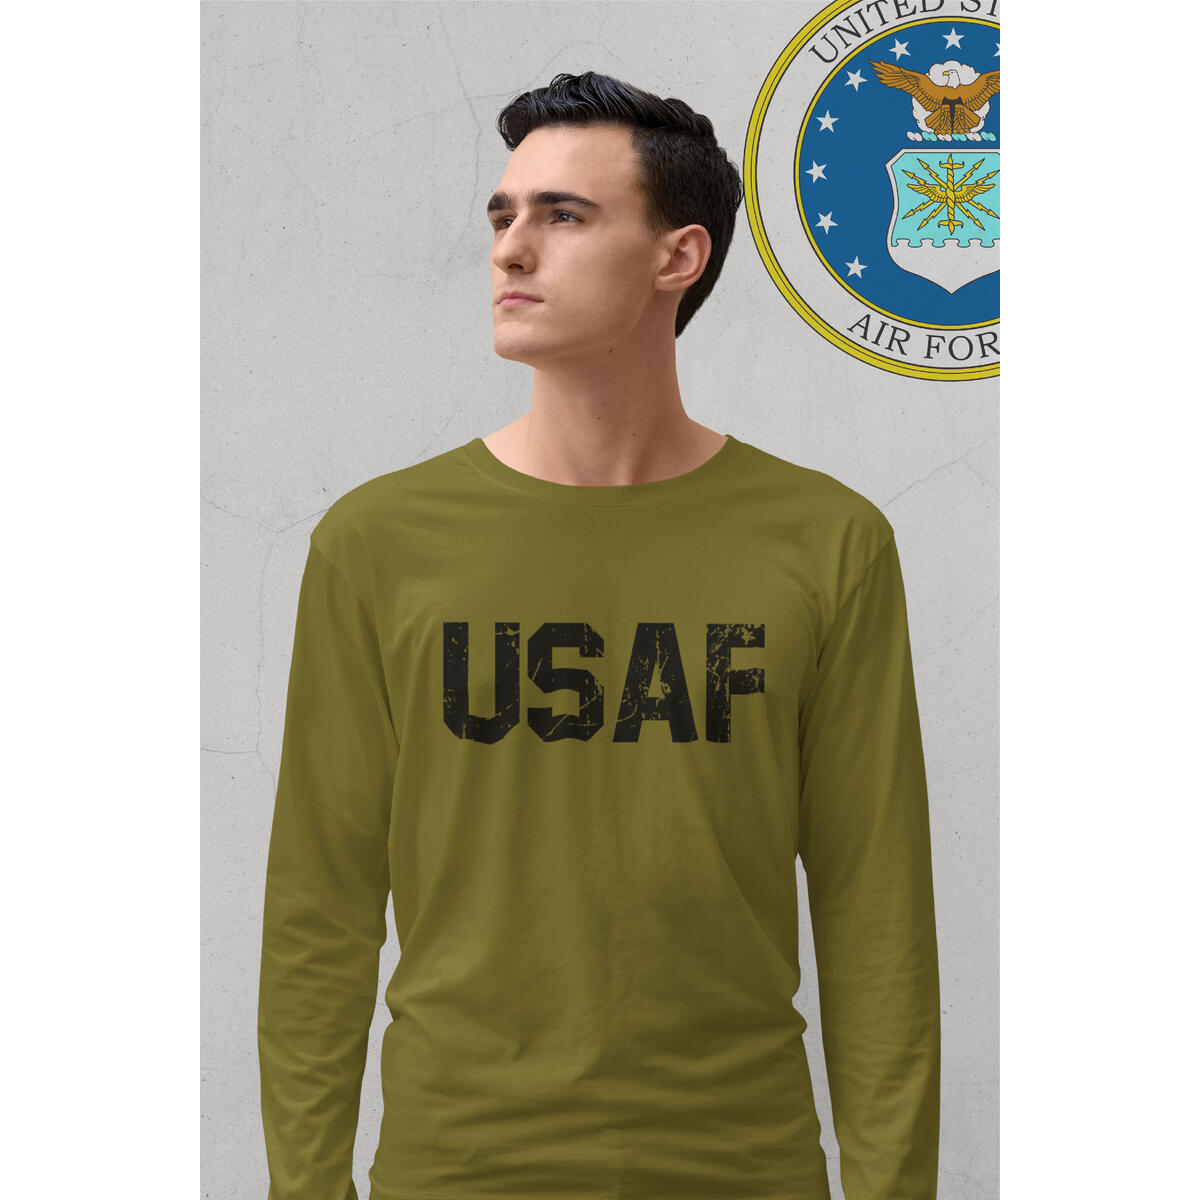 US Air Force Long Sleeve Shirt Gift USAF Tshirt United State Military T Shirts